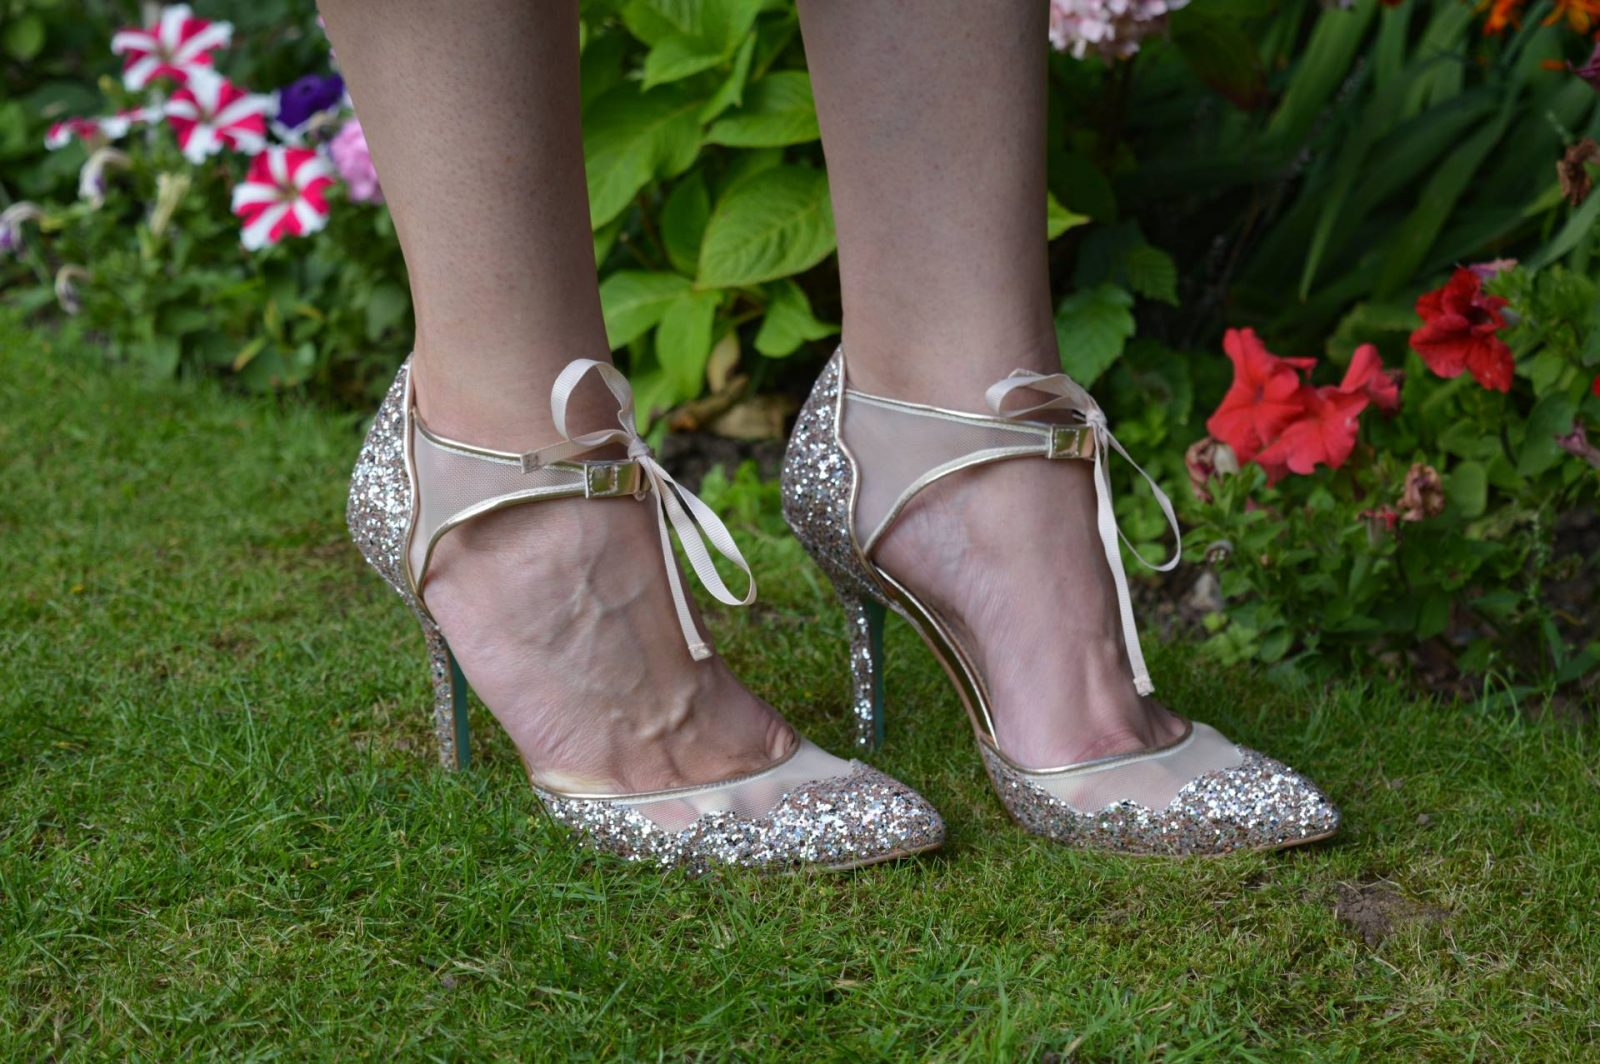 Betsey Johnson rose gold glitter shoes